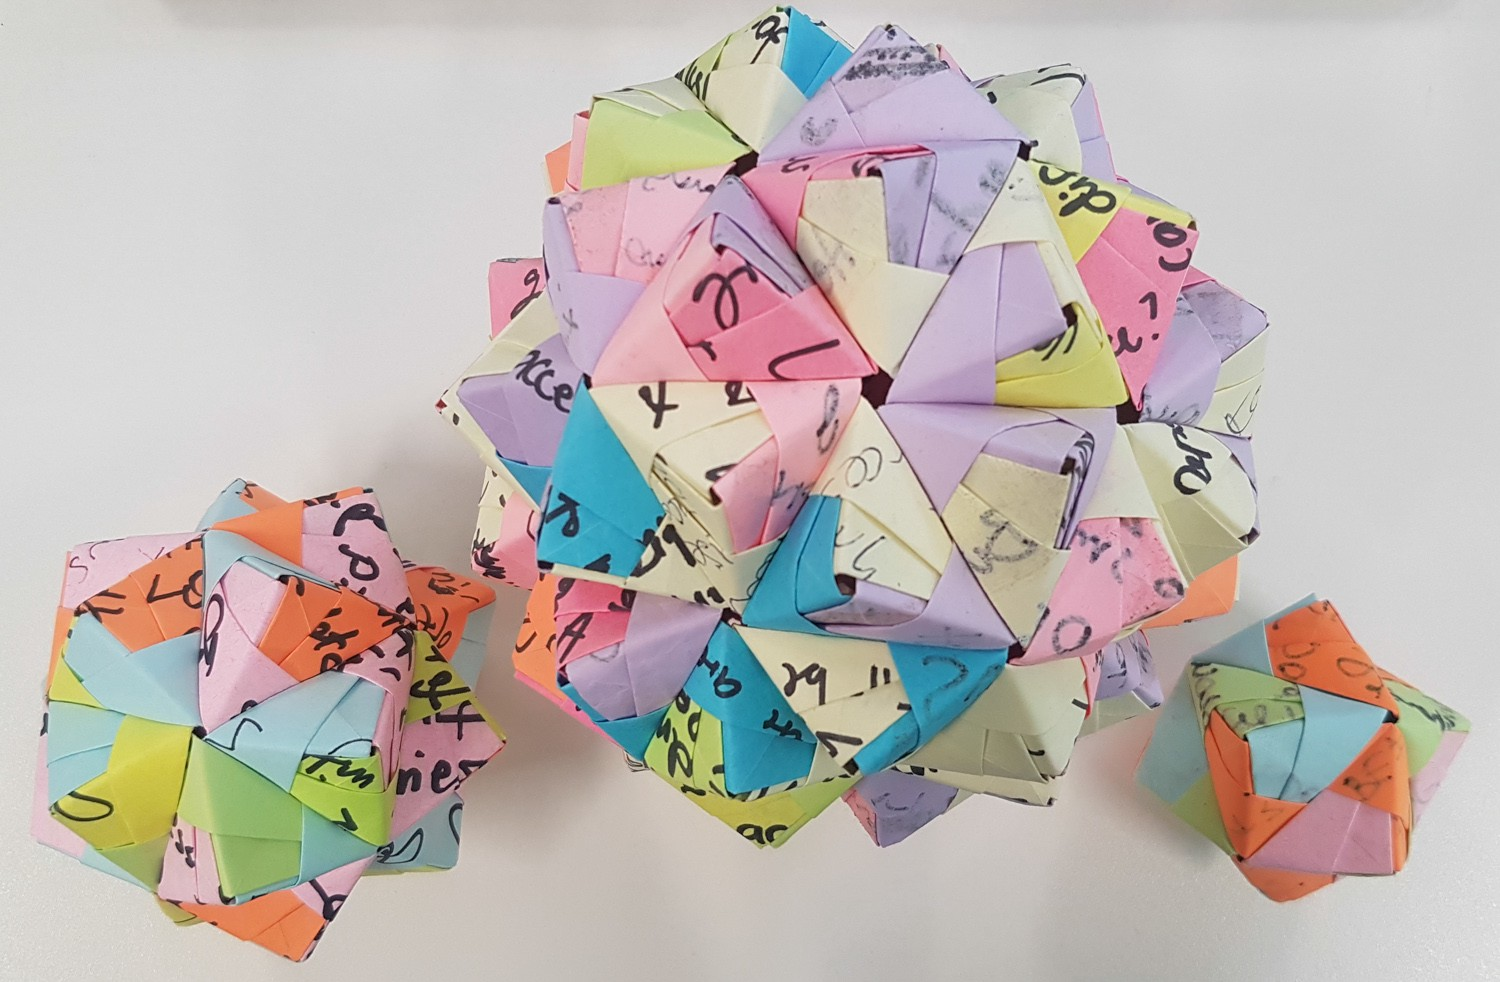 How To Turn Your Old Workshop Sticky Notes Into Modular Origami